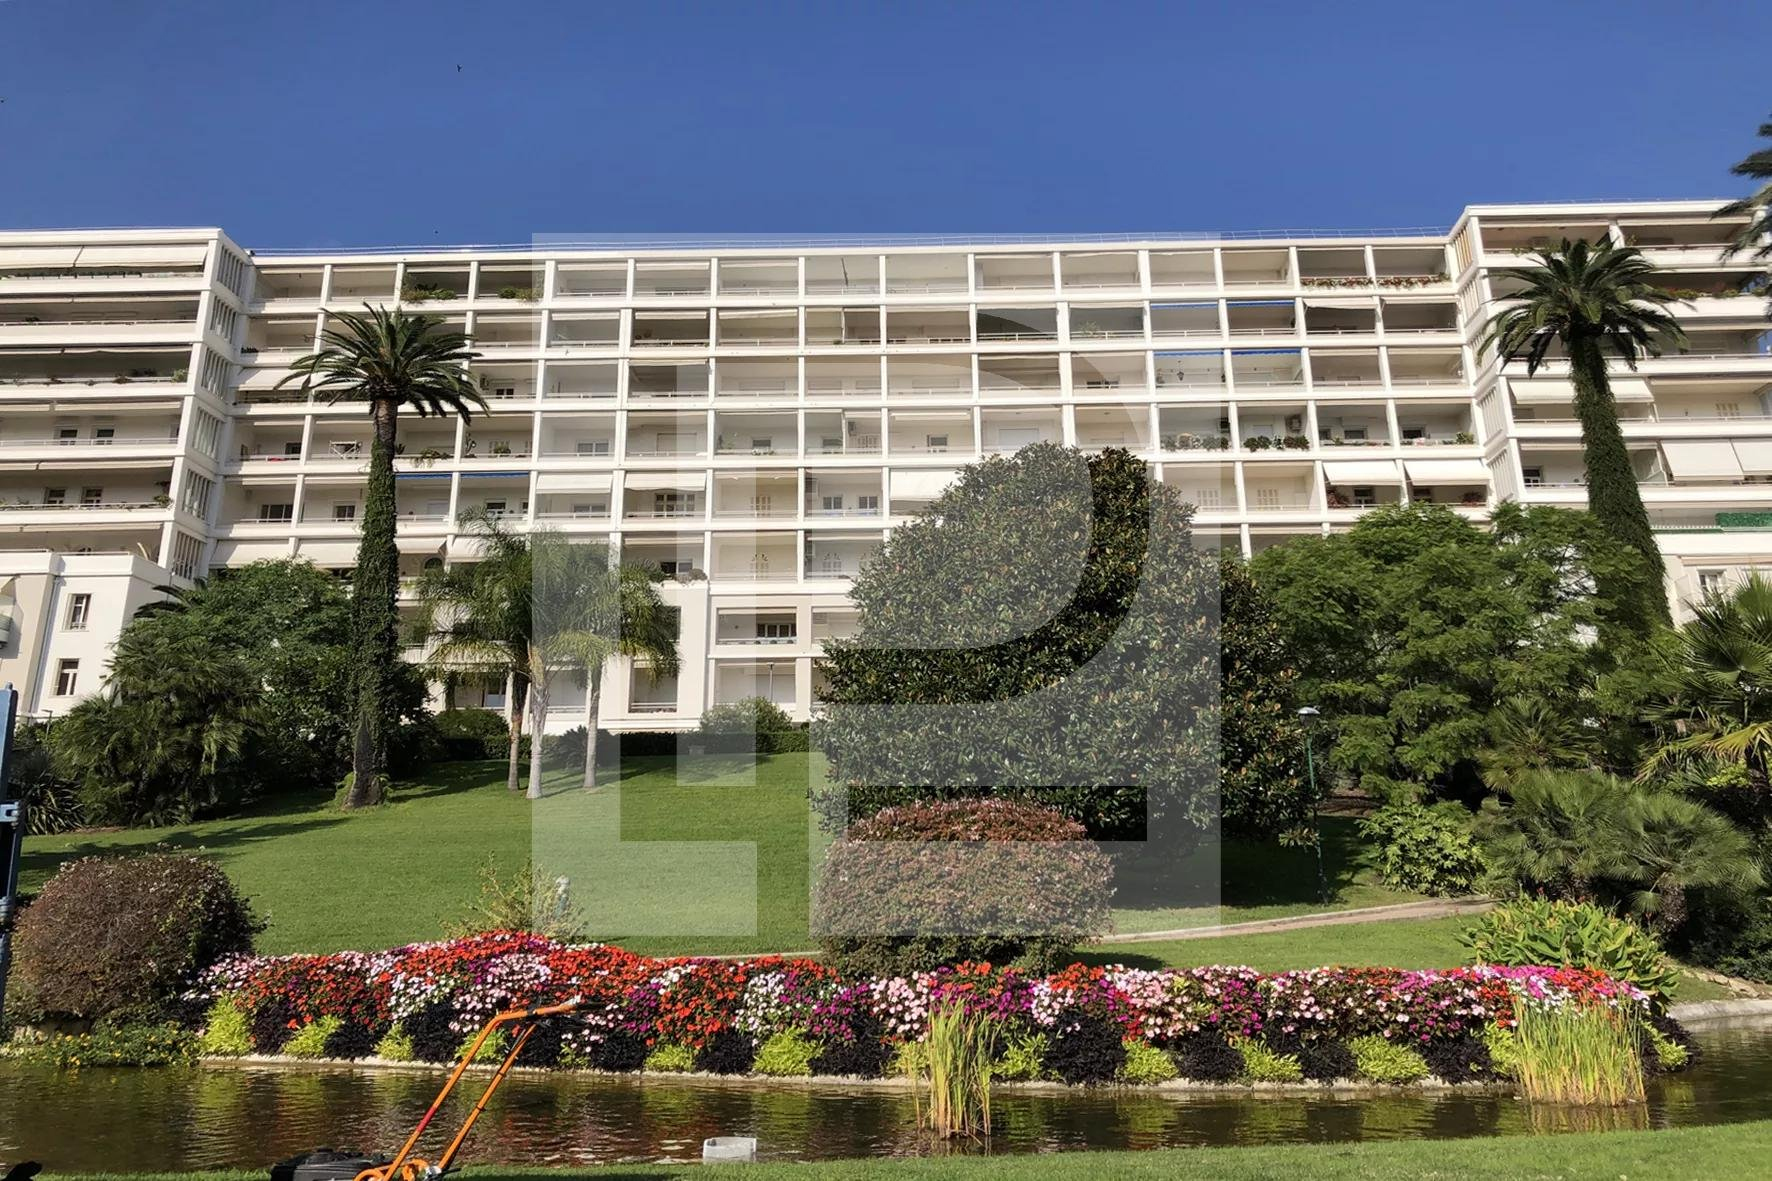 CO-EXCLUSIVITE - Grand studio - A 250m de la rue d'Antibes